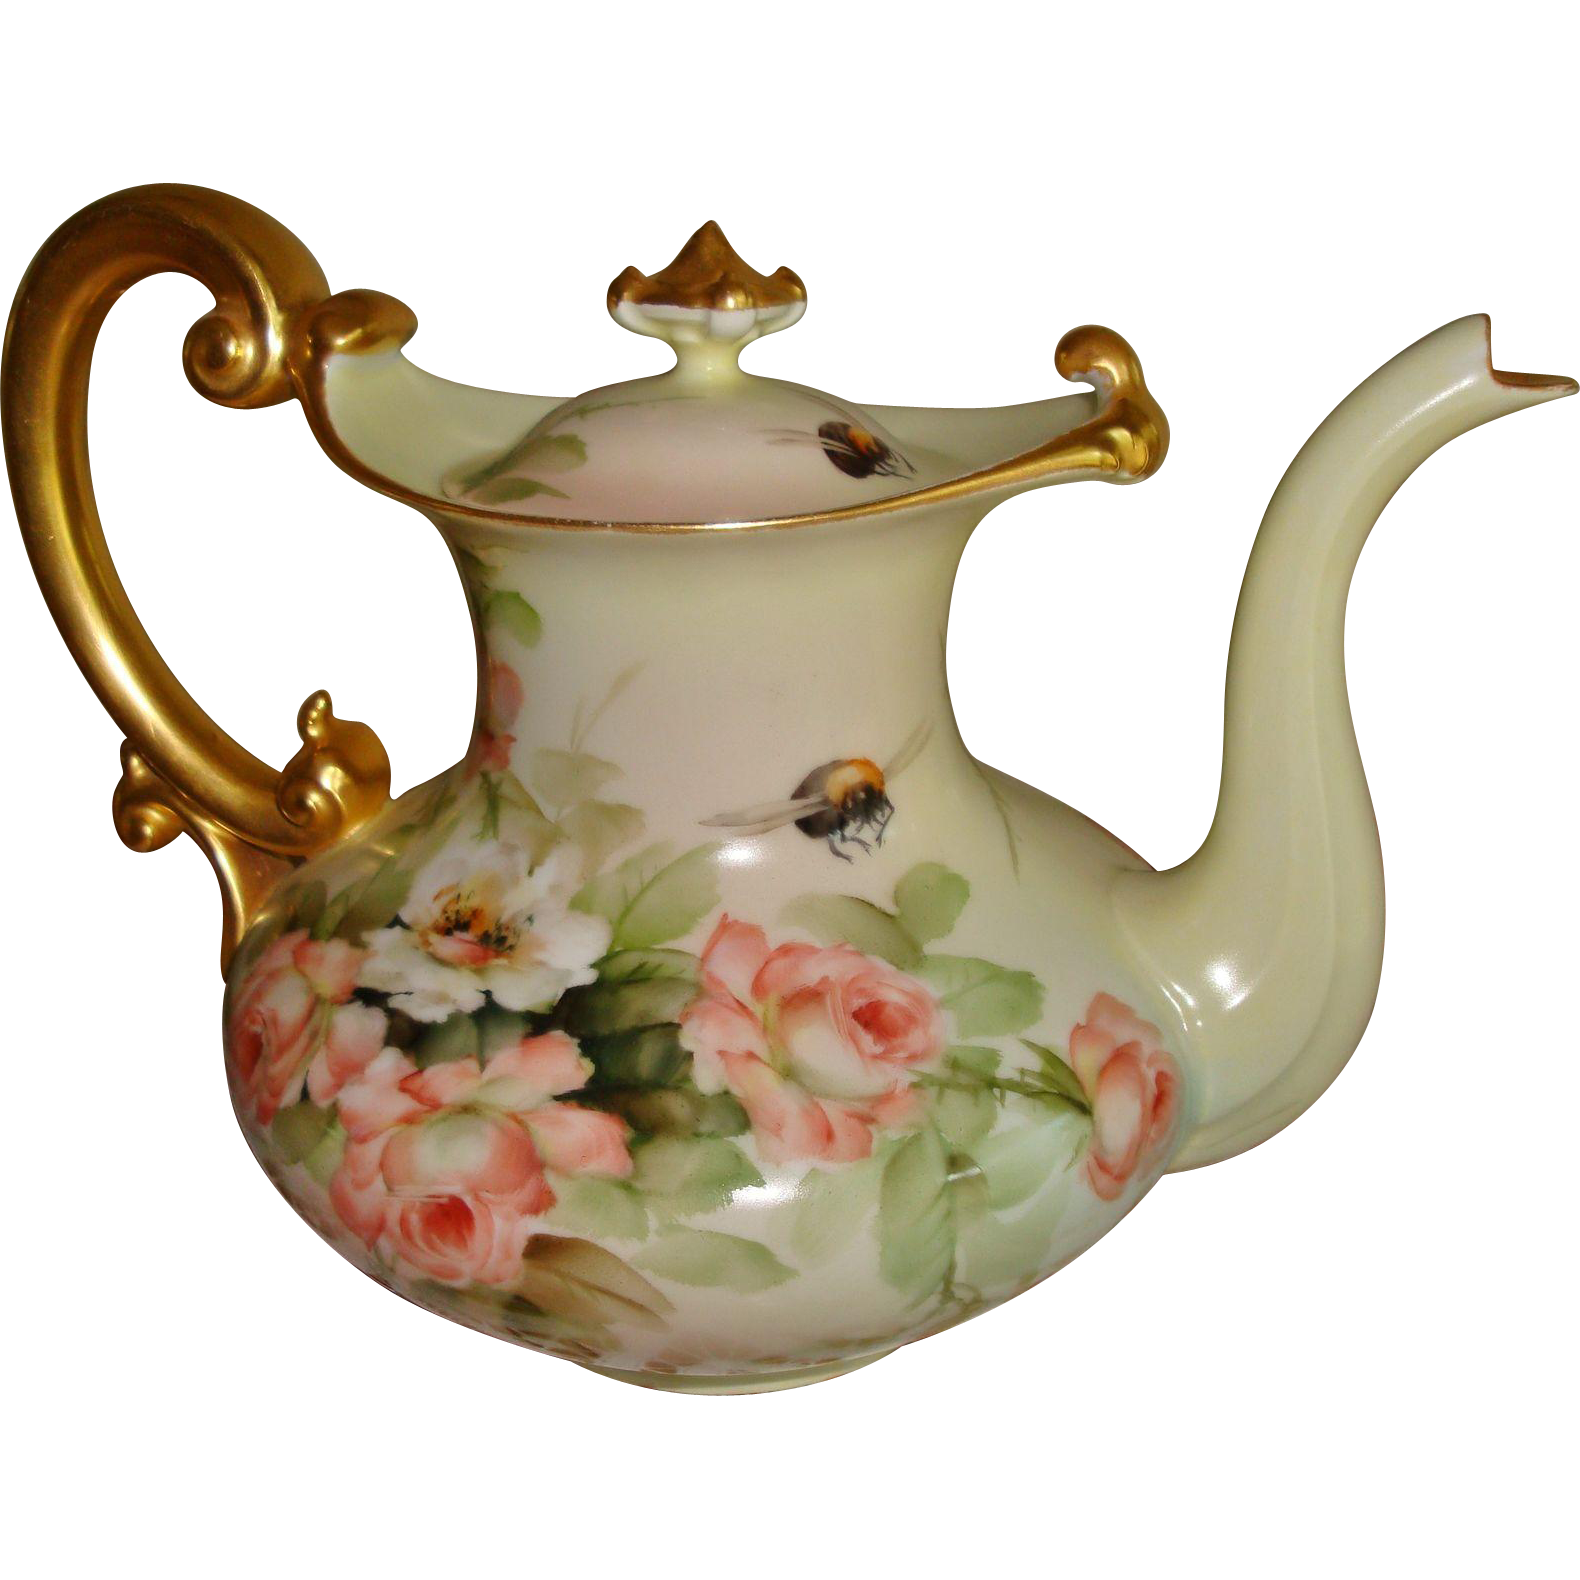 Museum Quality Antique Limoges France Hand Painted Porcelain French Coffee Pot Tea Pot E. Miler Roses. 19th Century